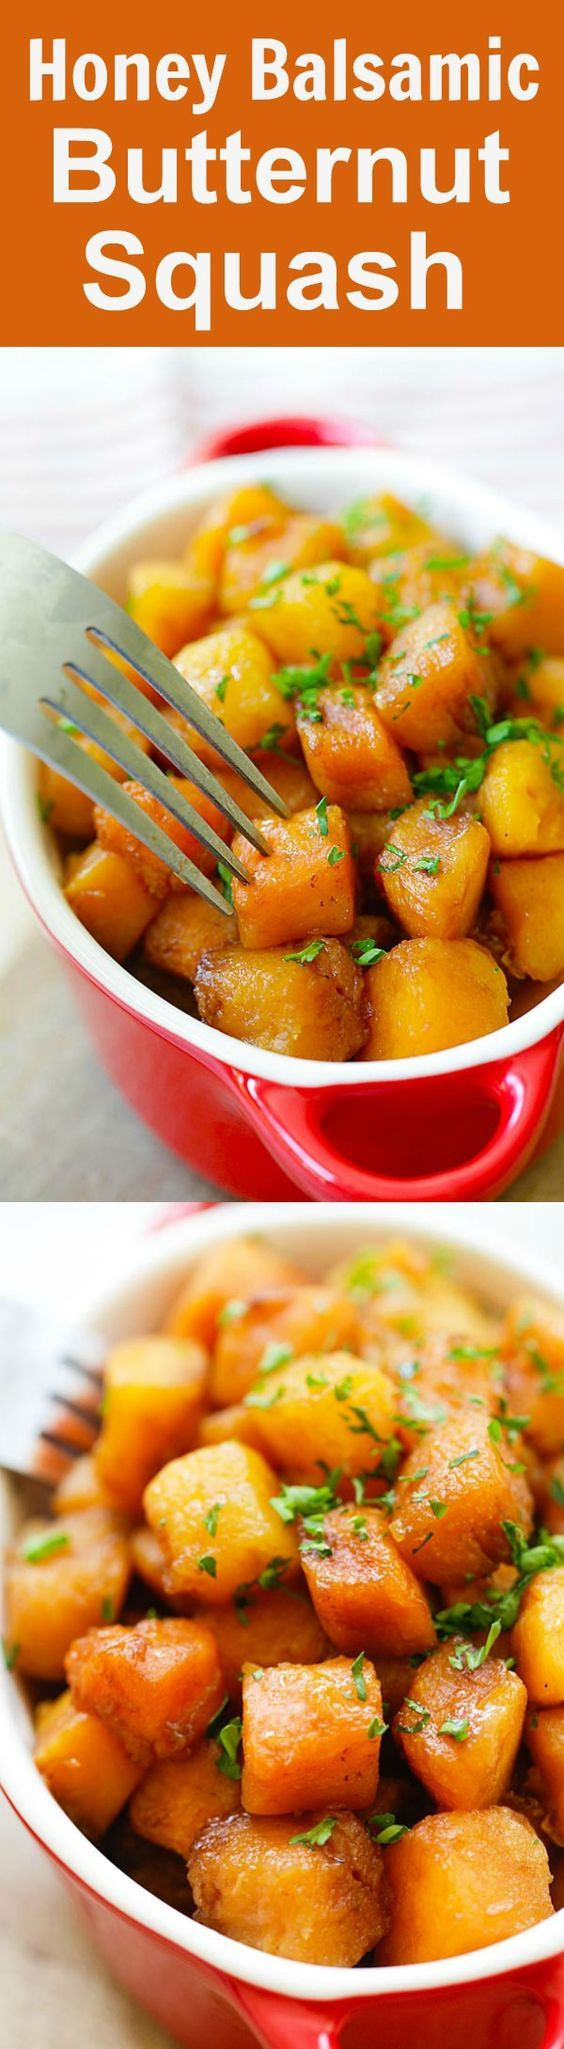 Honey Balsamic Butternut Squash – roasted butternut squash with ...